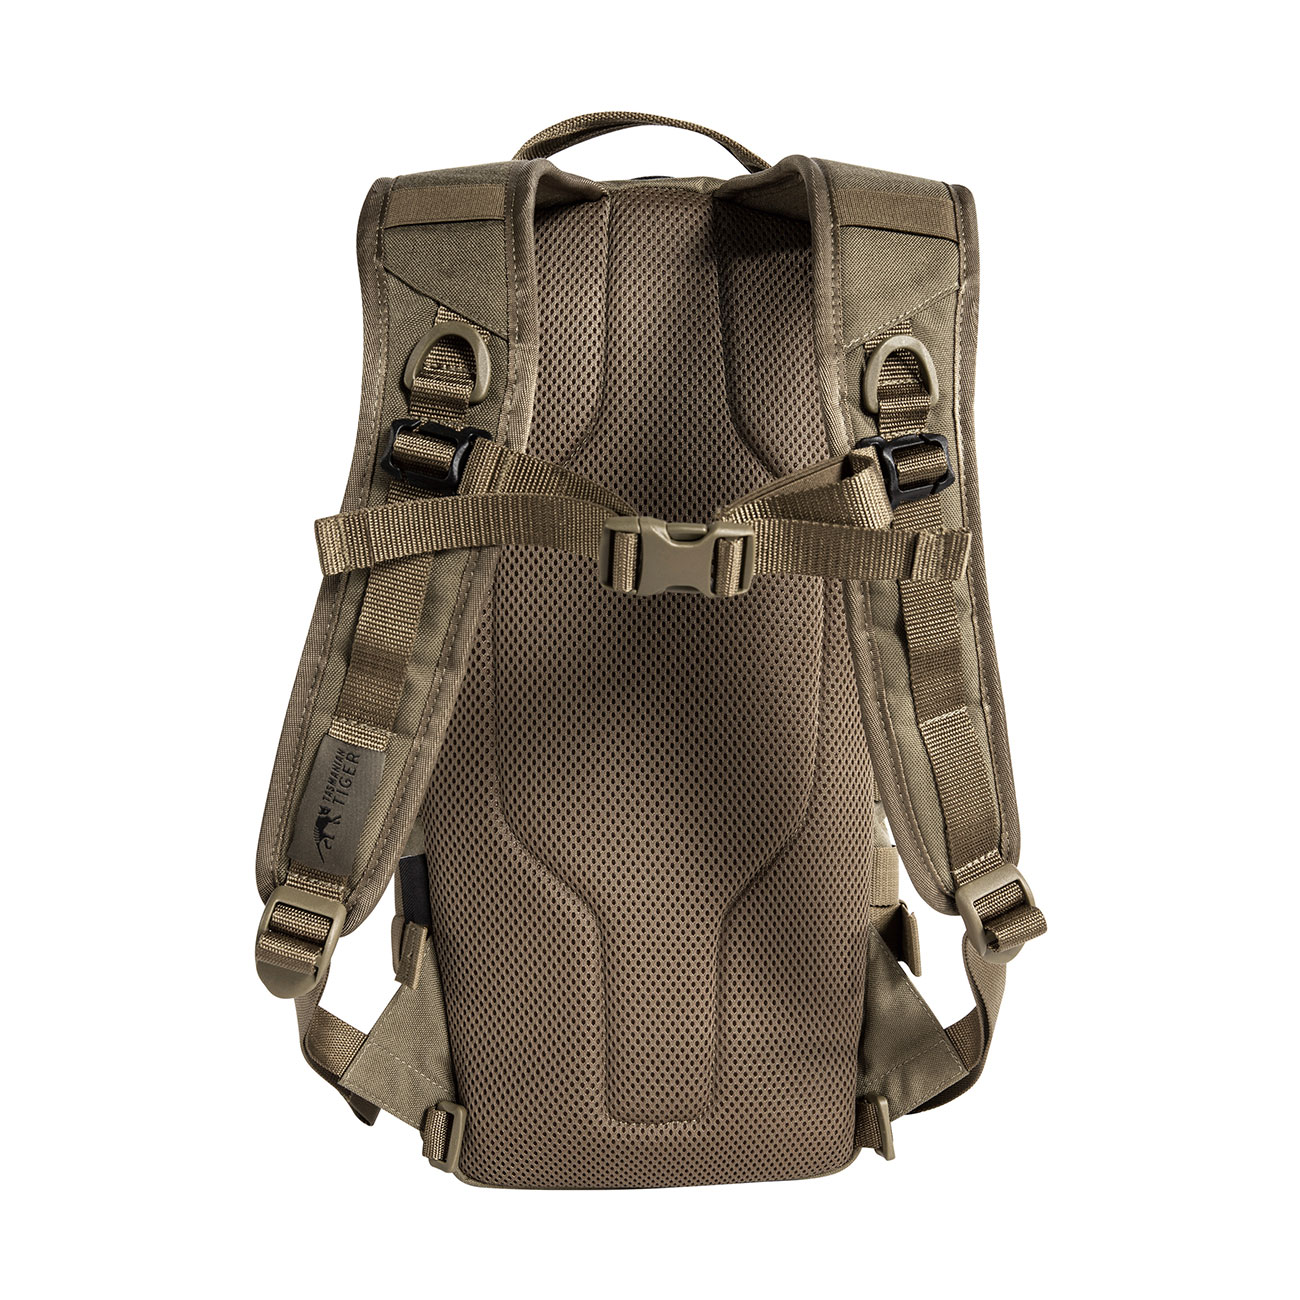 Tasmanian Tiger Tagesrucksack TT Essential Pack MKII coyote brown 9 Liter 3